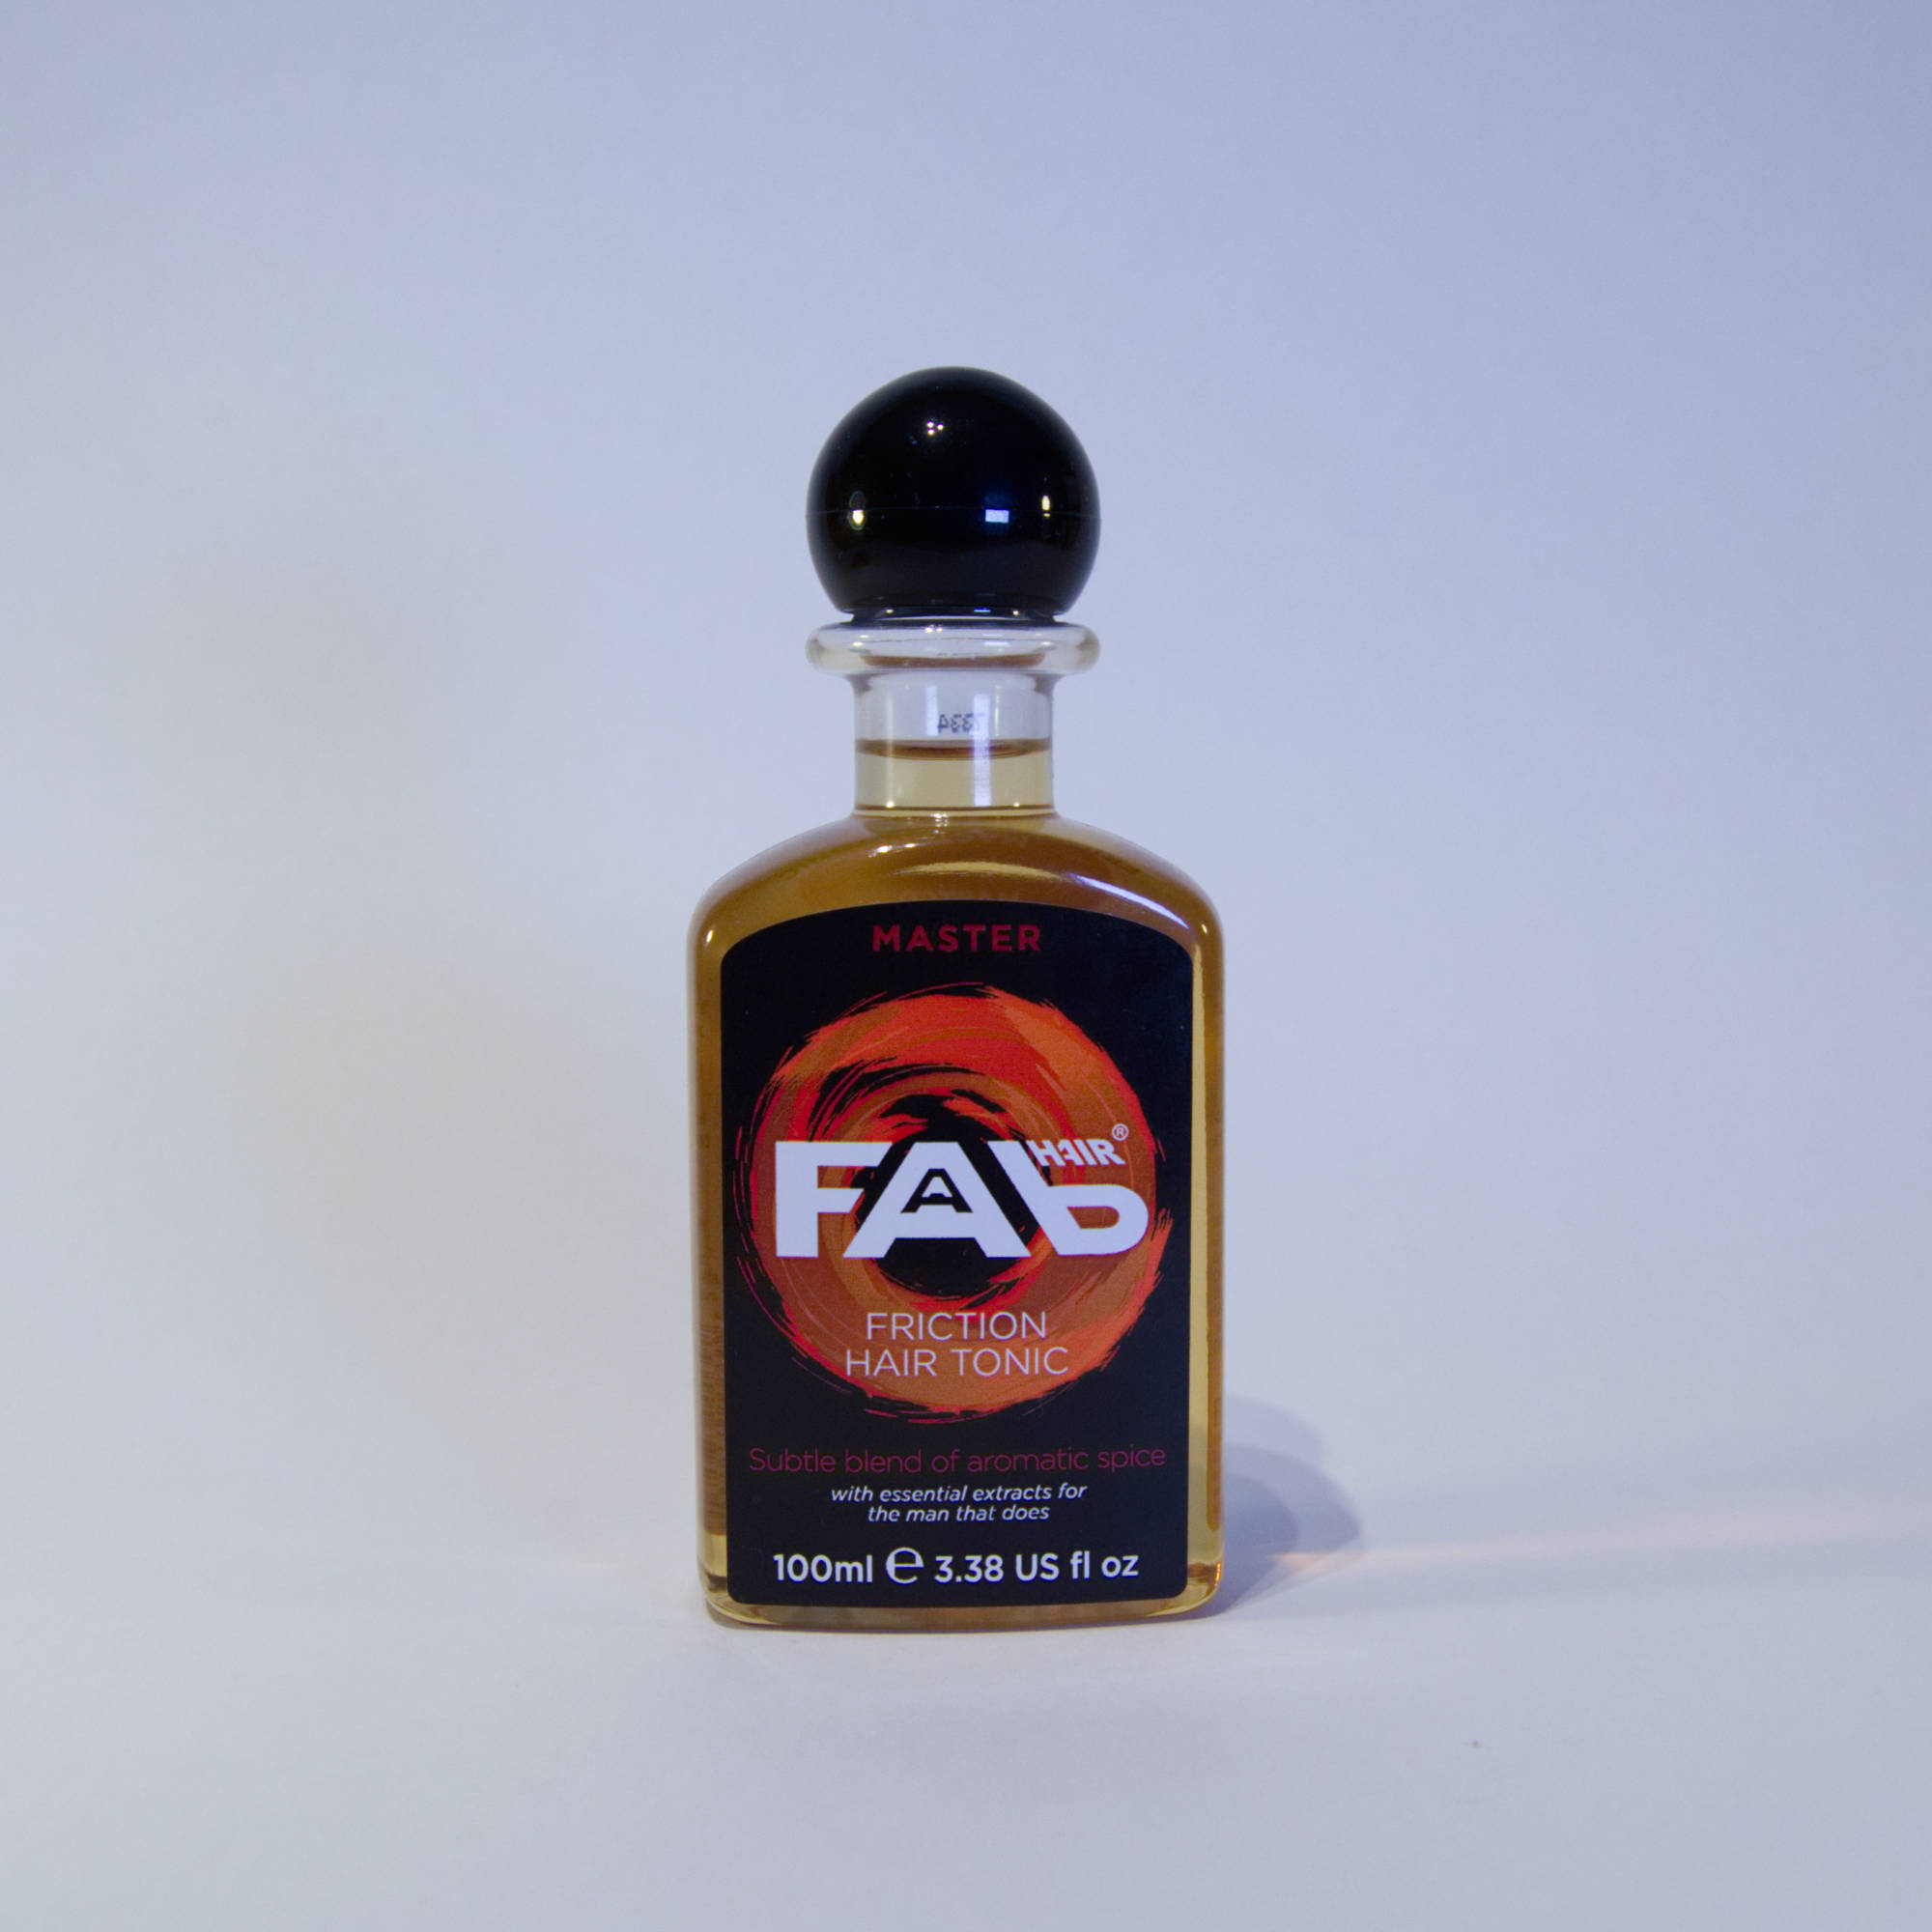 100ml bottle of Master flavoured FAB friction hair tonic